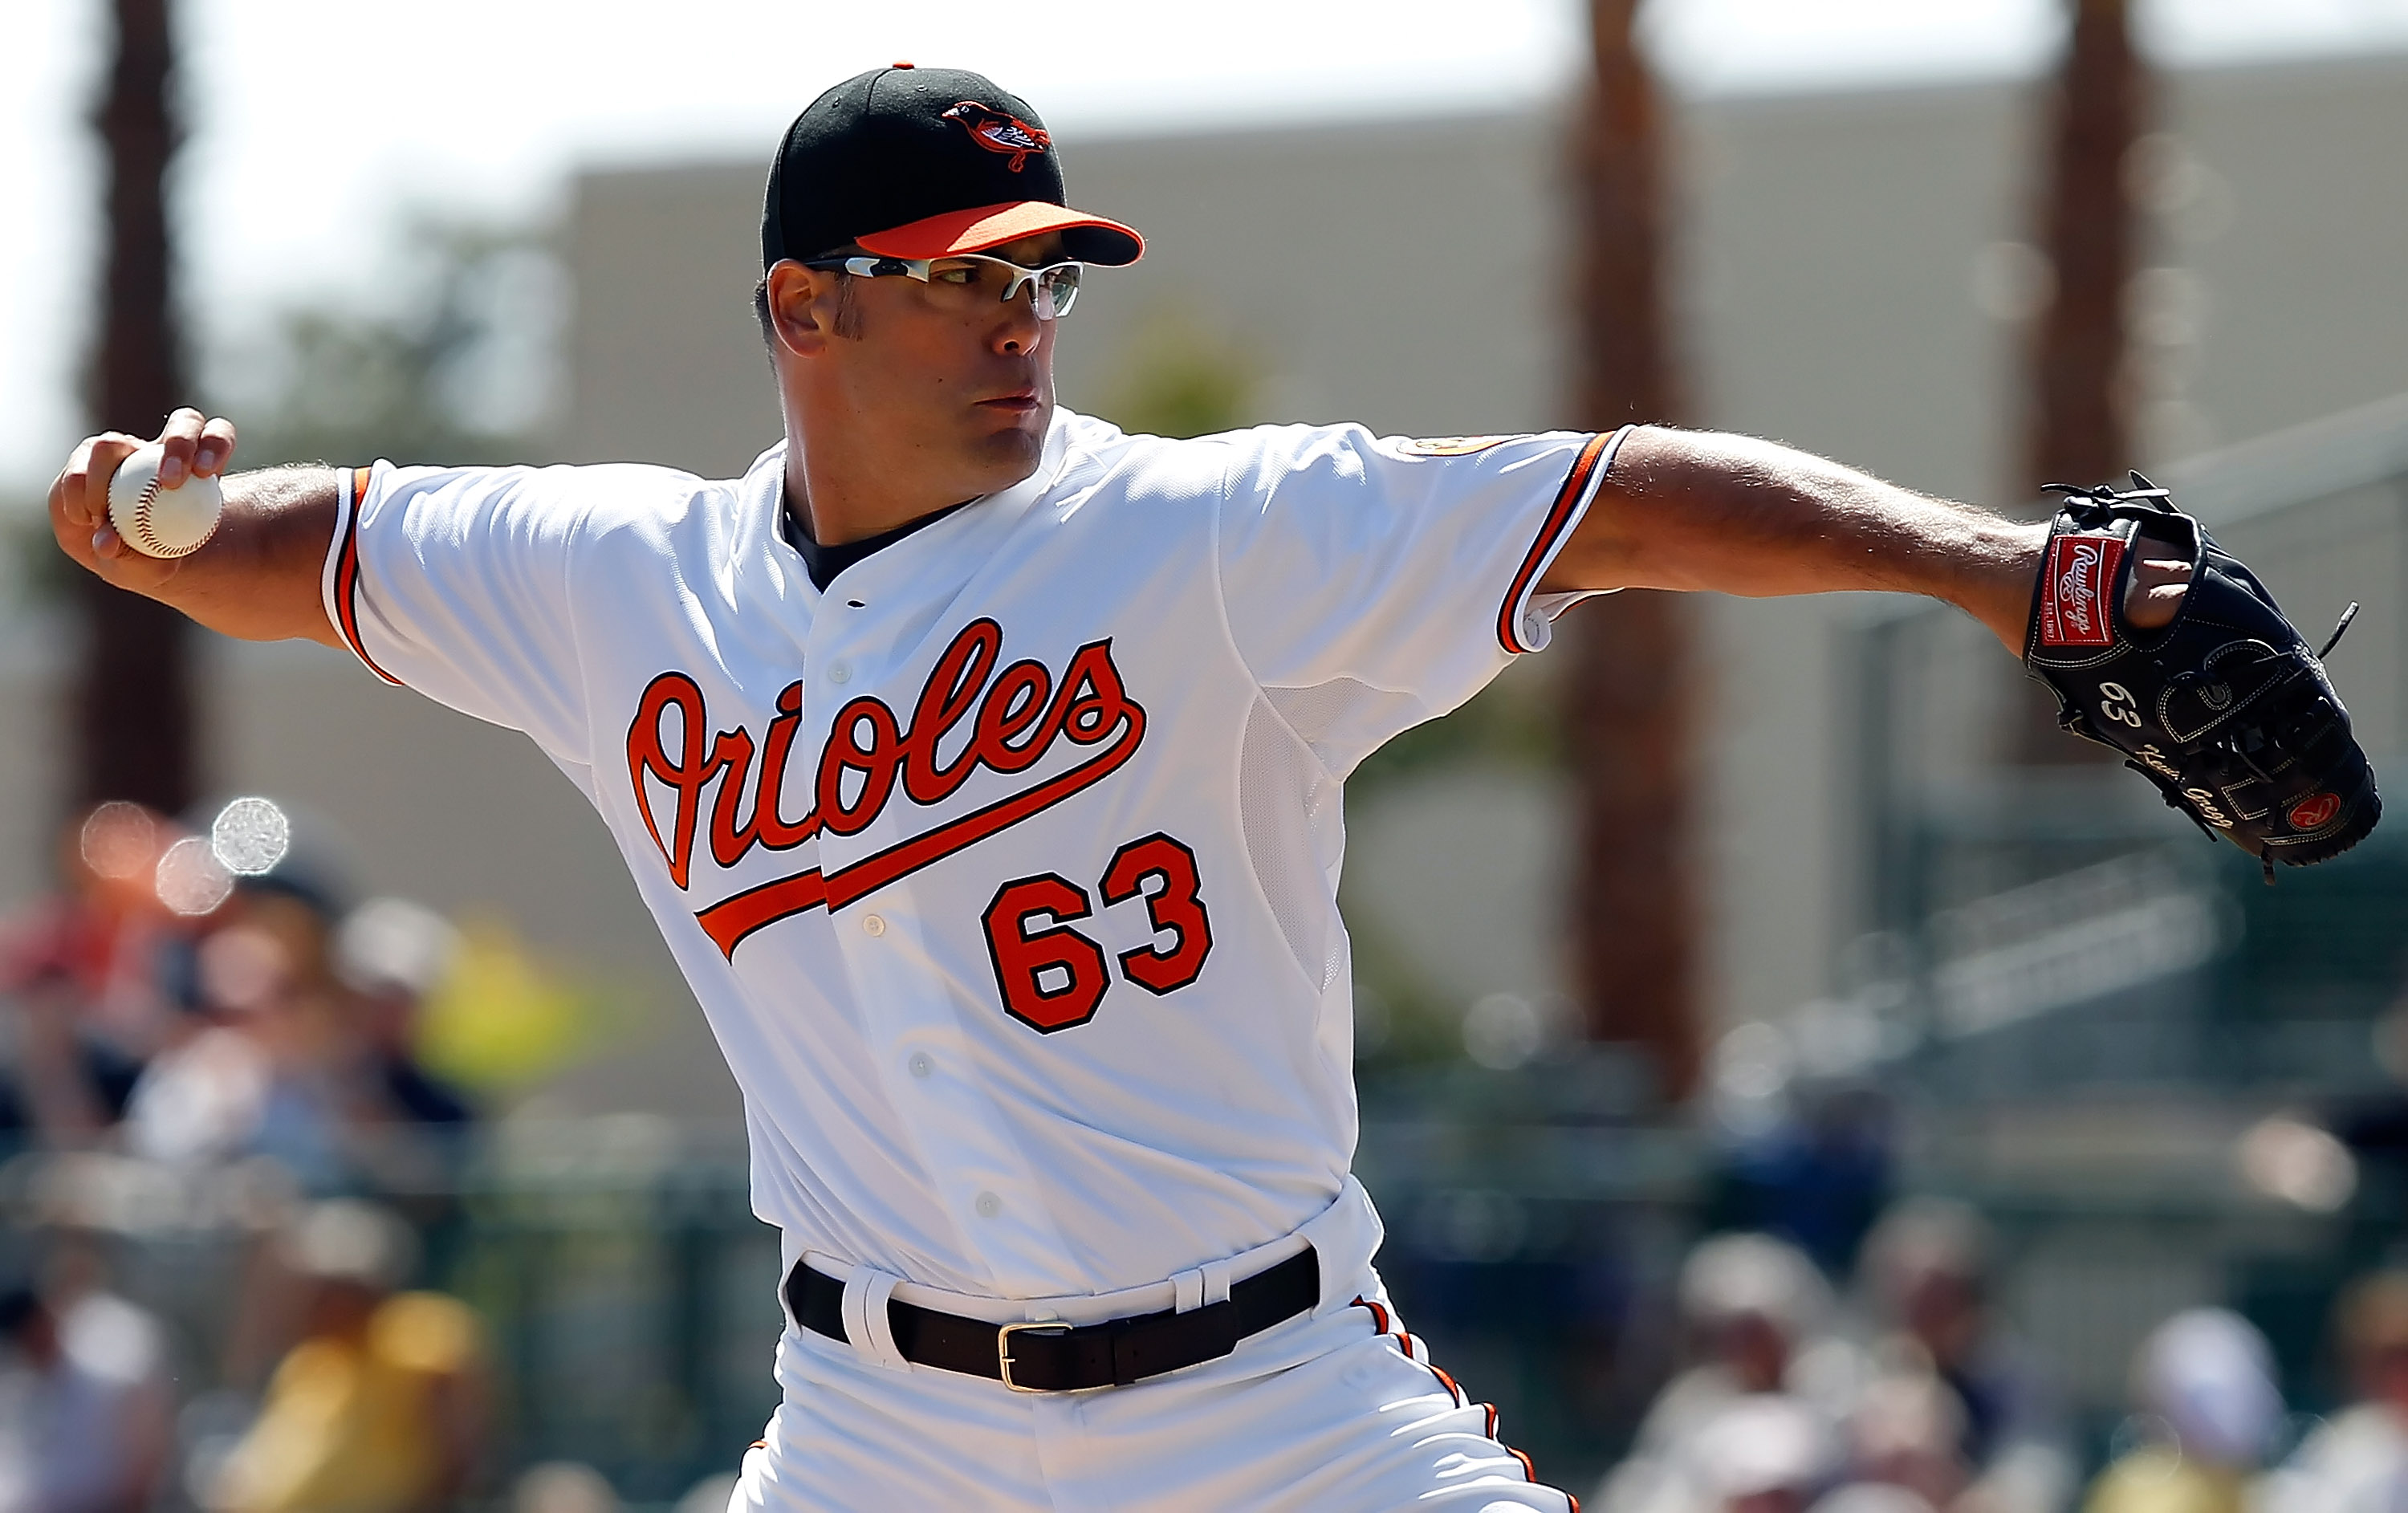 SARASOTA, FL - MARCH 03:  Pitcher Kevin Gregg #63 of the Baltimore Orioles pitches against the Minnesota Twins during a Grapefruit League Spring Training Game at Ed Smith Stadium on March 3, 2011 in Sarasota, Florida.  (Photo by J. Meric/Getty Images)